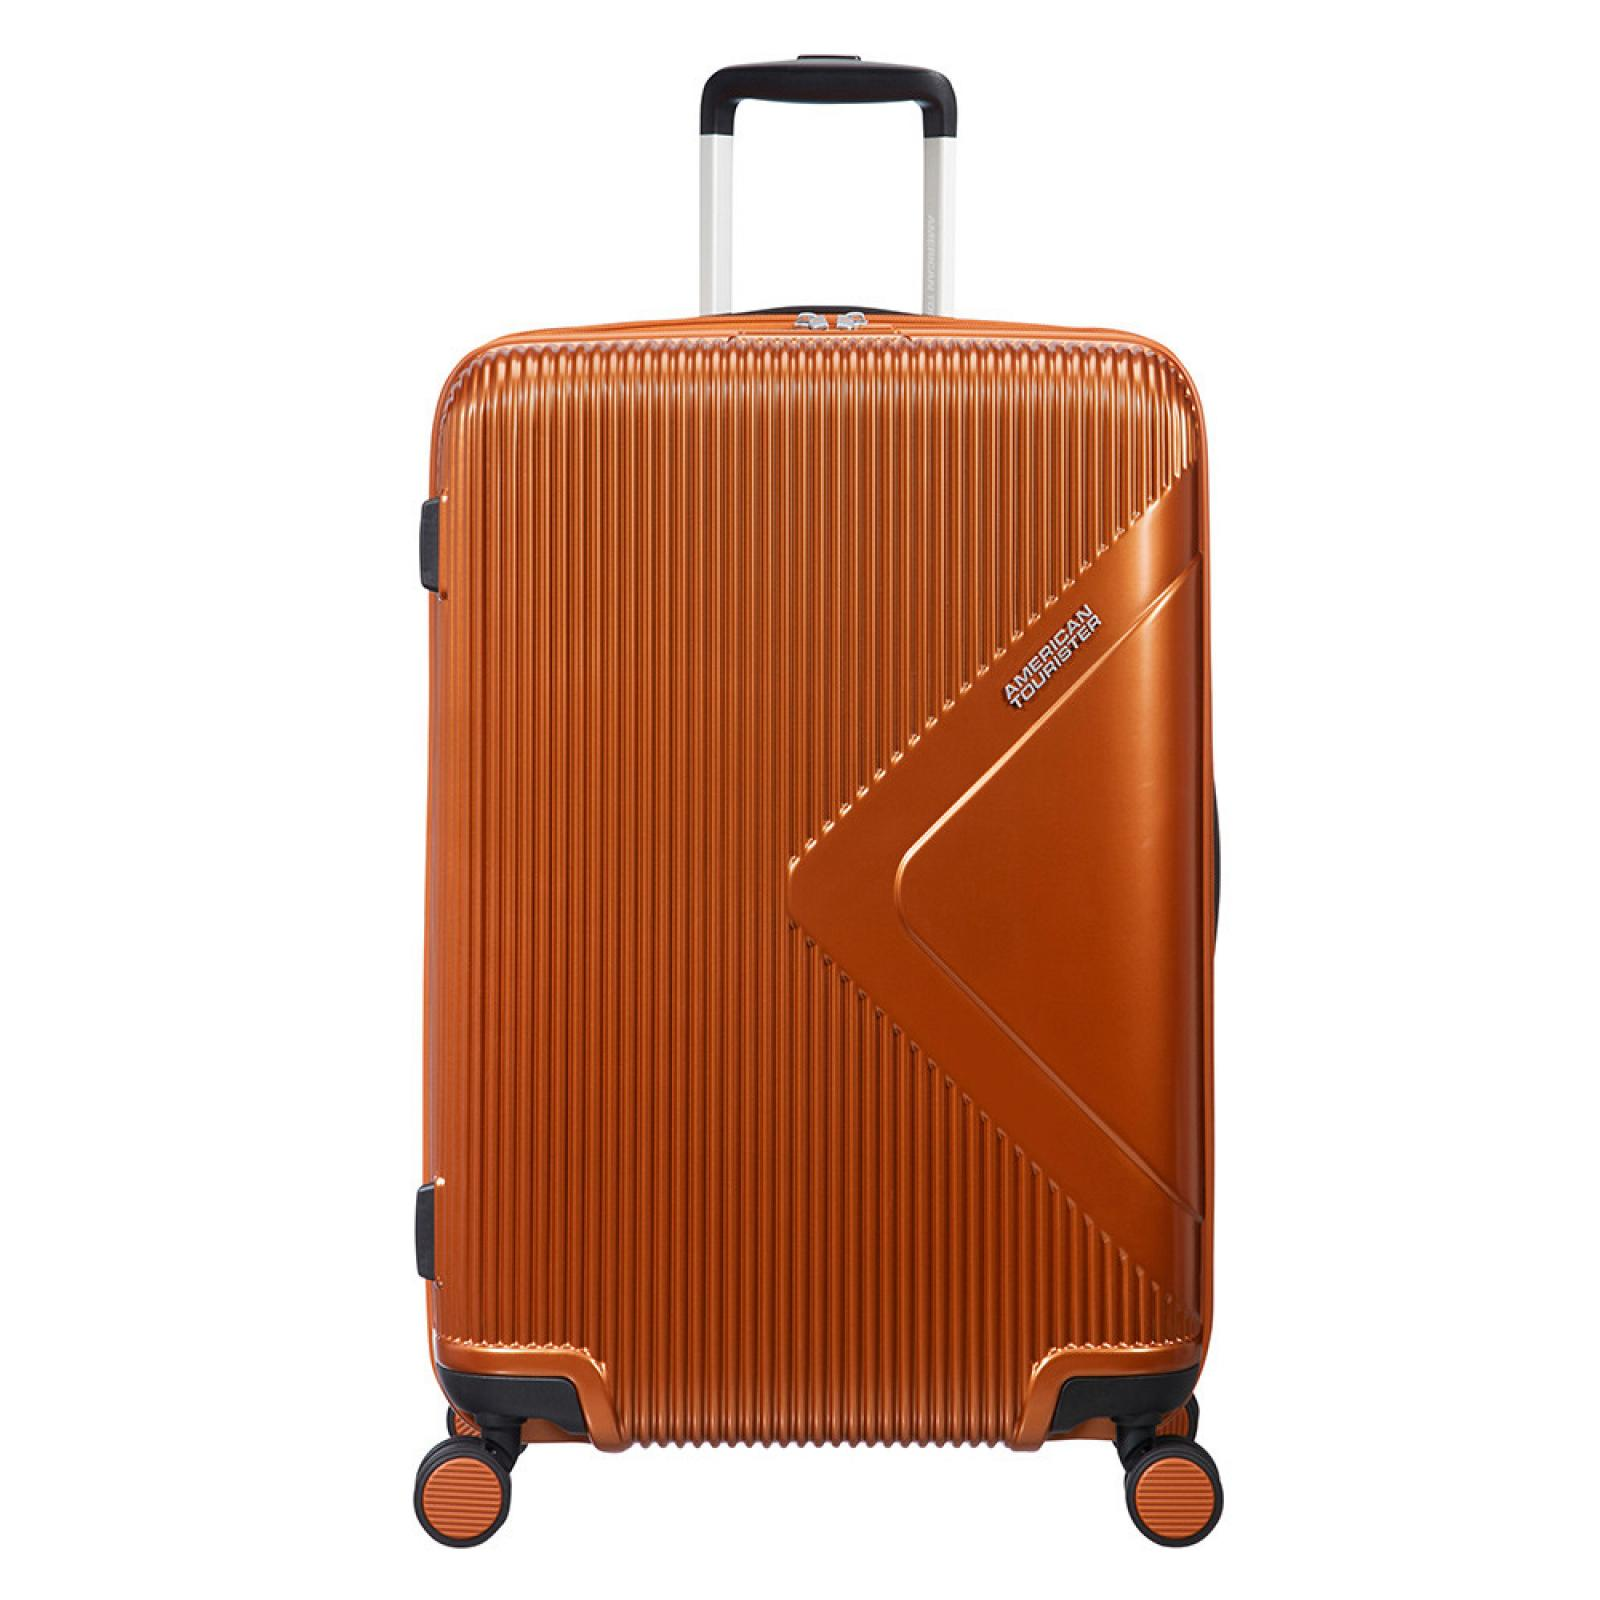 Trolley Medio 69/25 Exp Modern Dream Spinner - COPPER/ORANGE